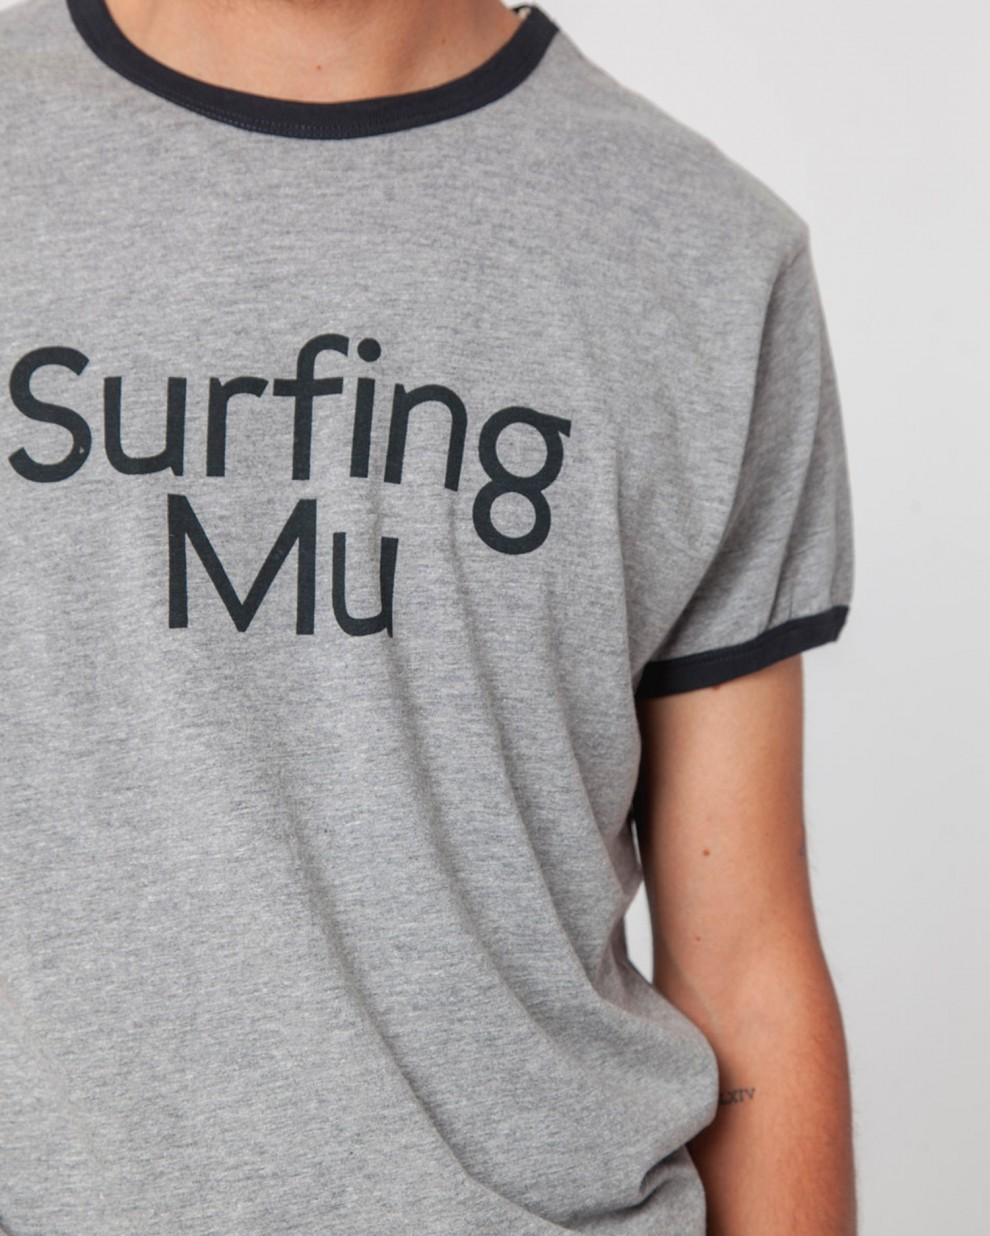 Surfing MU Retro Tee